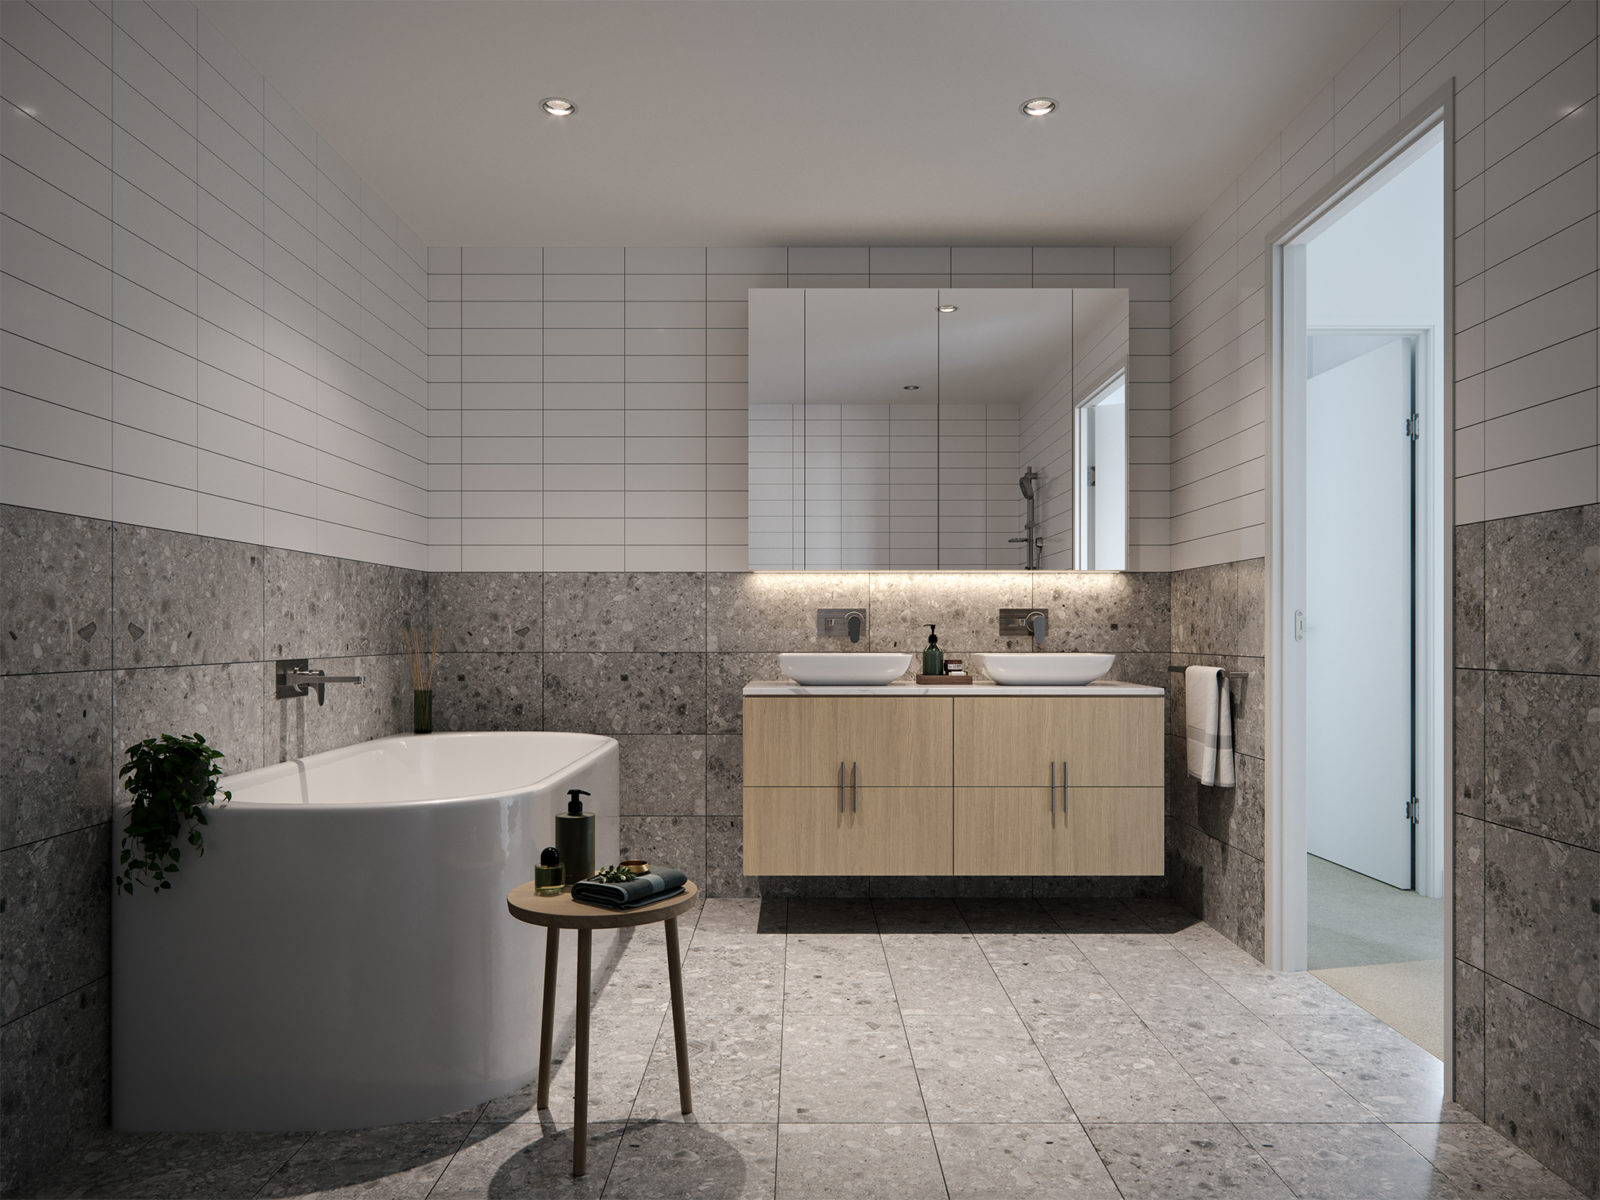 1_1_19030-kiara-narrabundah-cgi16-th-4b-bathroom-light-scheme-final-web